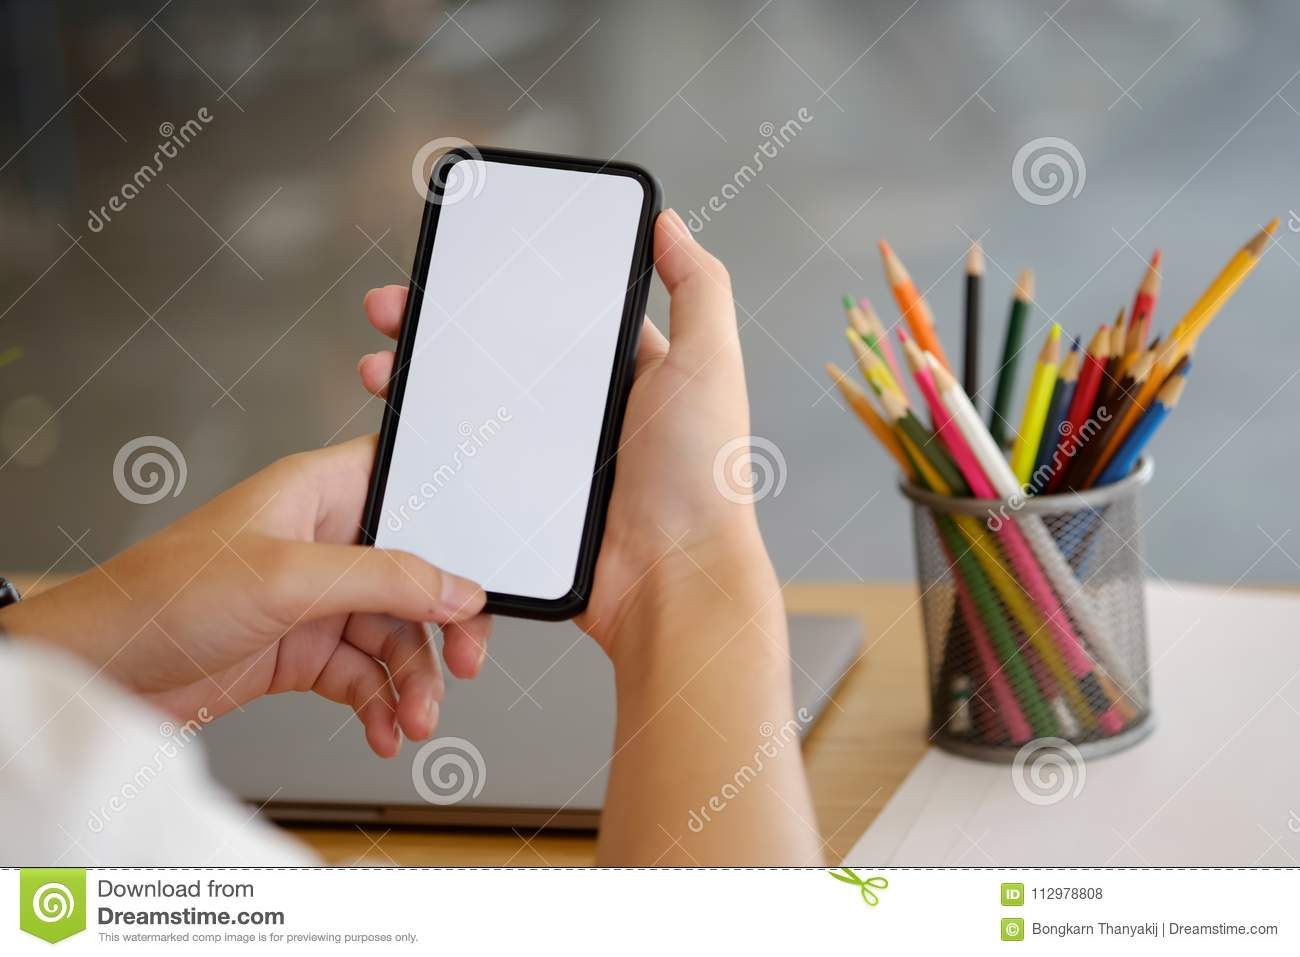 Man using mobile phone in office